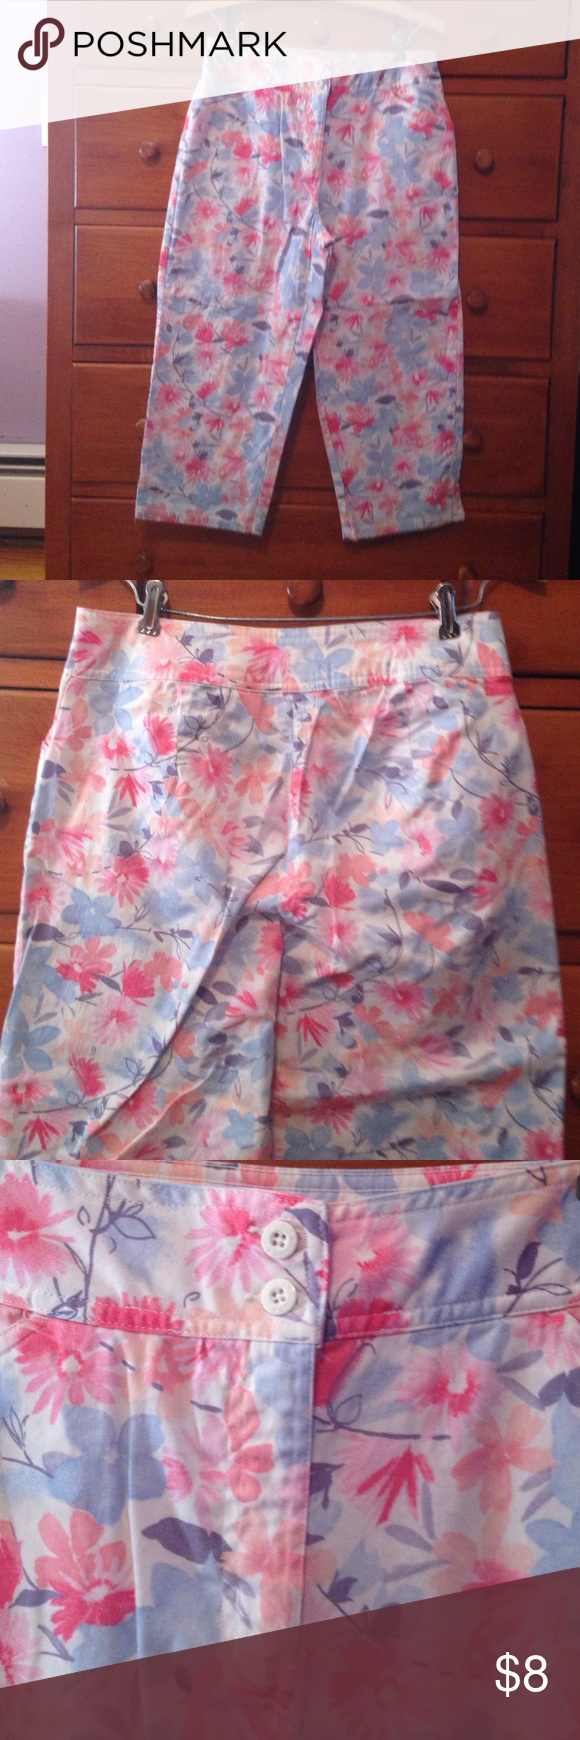 Bill Blass Jeans sz 8P flowered capris Bill Blass Jeans sz 8P flowered capris. Cotton/Lycra blend stretch pants. Two front pockets. Pink, blue, coral flowers on a white background. Bill Blass  Pants Capris